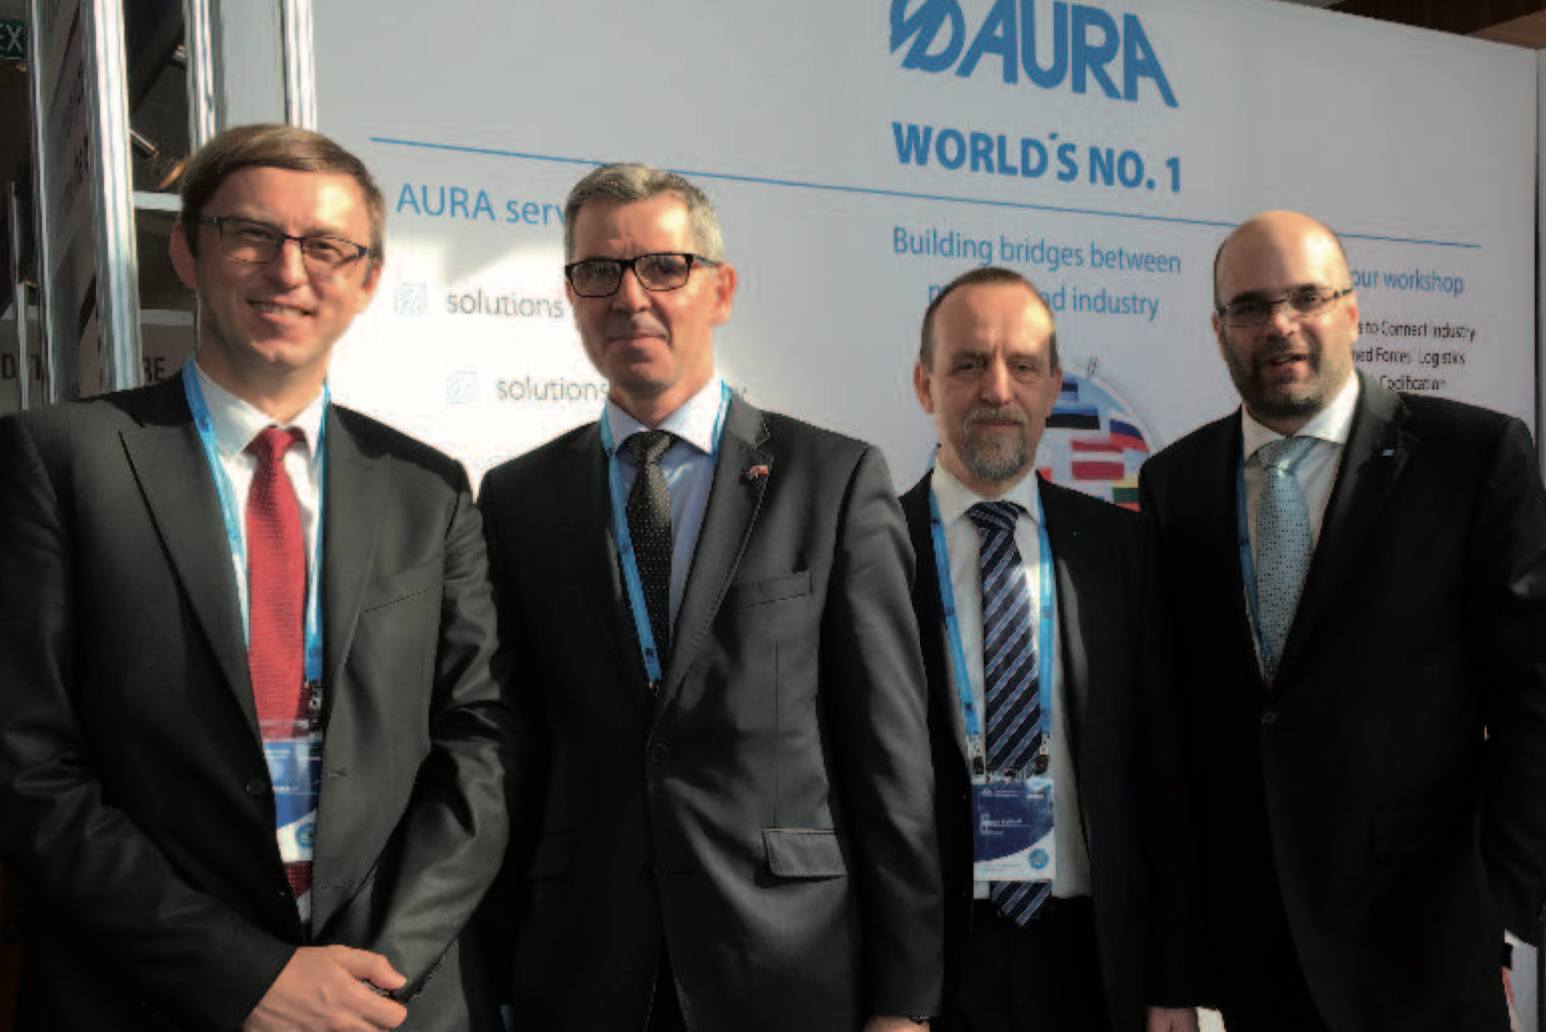 AURA in the Year 2017 – Expert on Military Information Systems